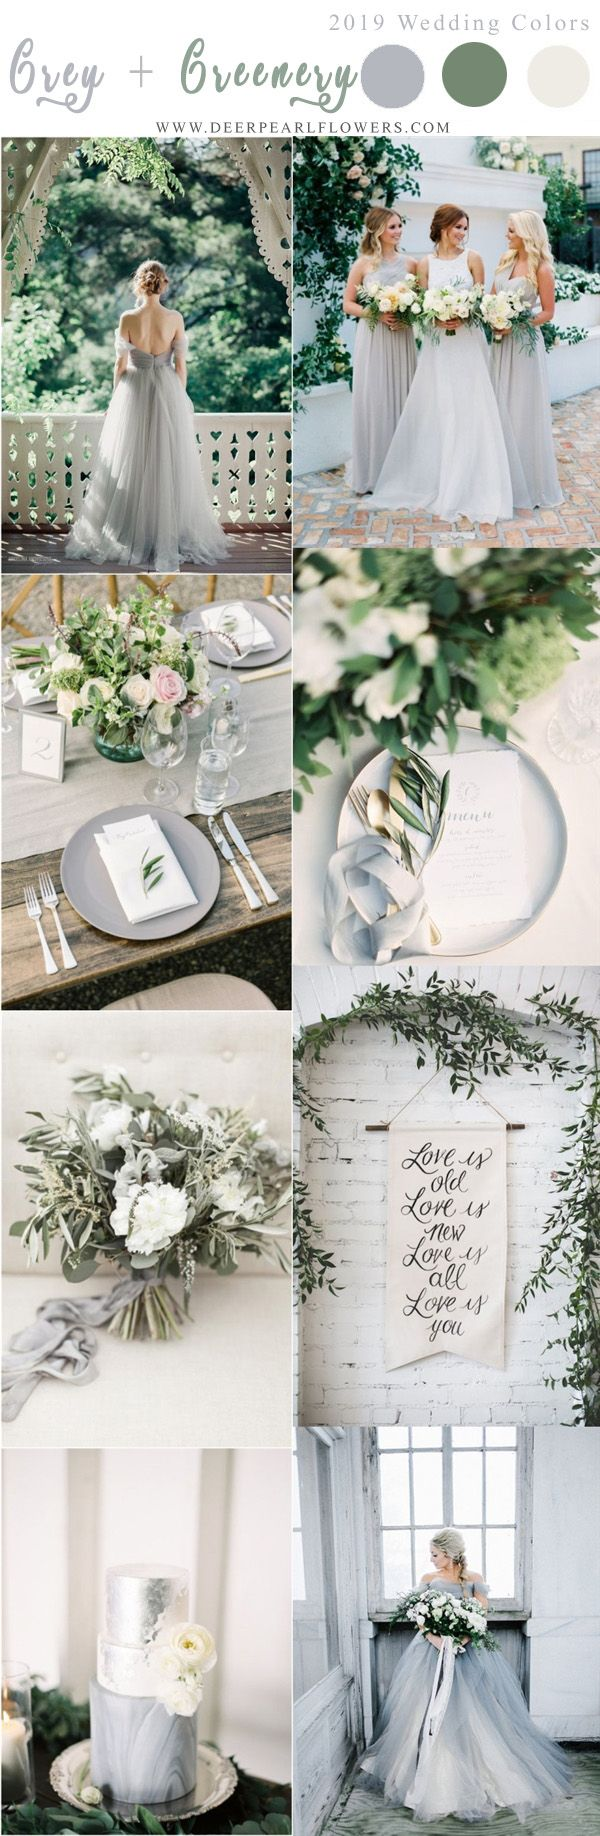 Top 10 Wedding Color Scheme Ideas for 2020 Trends